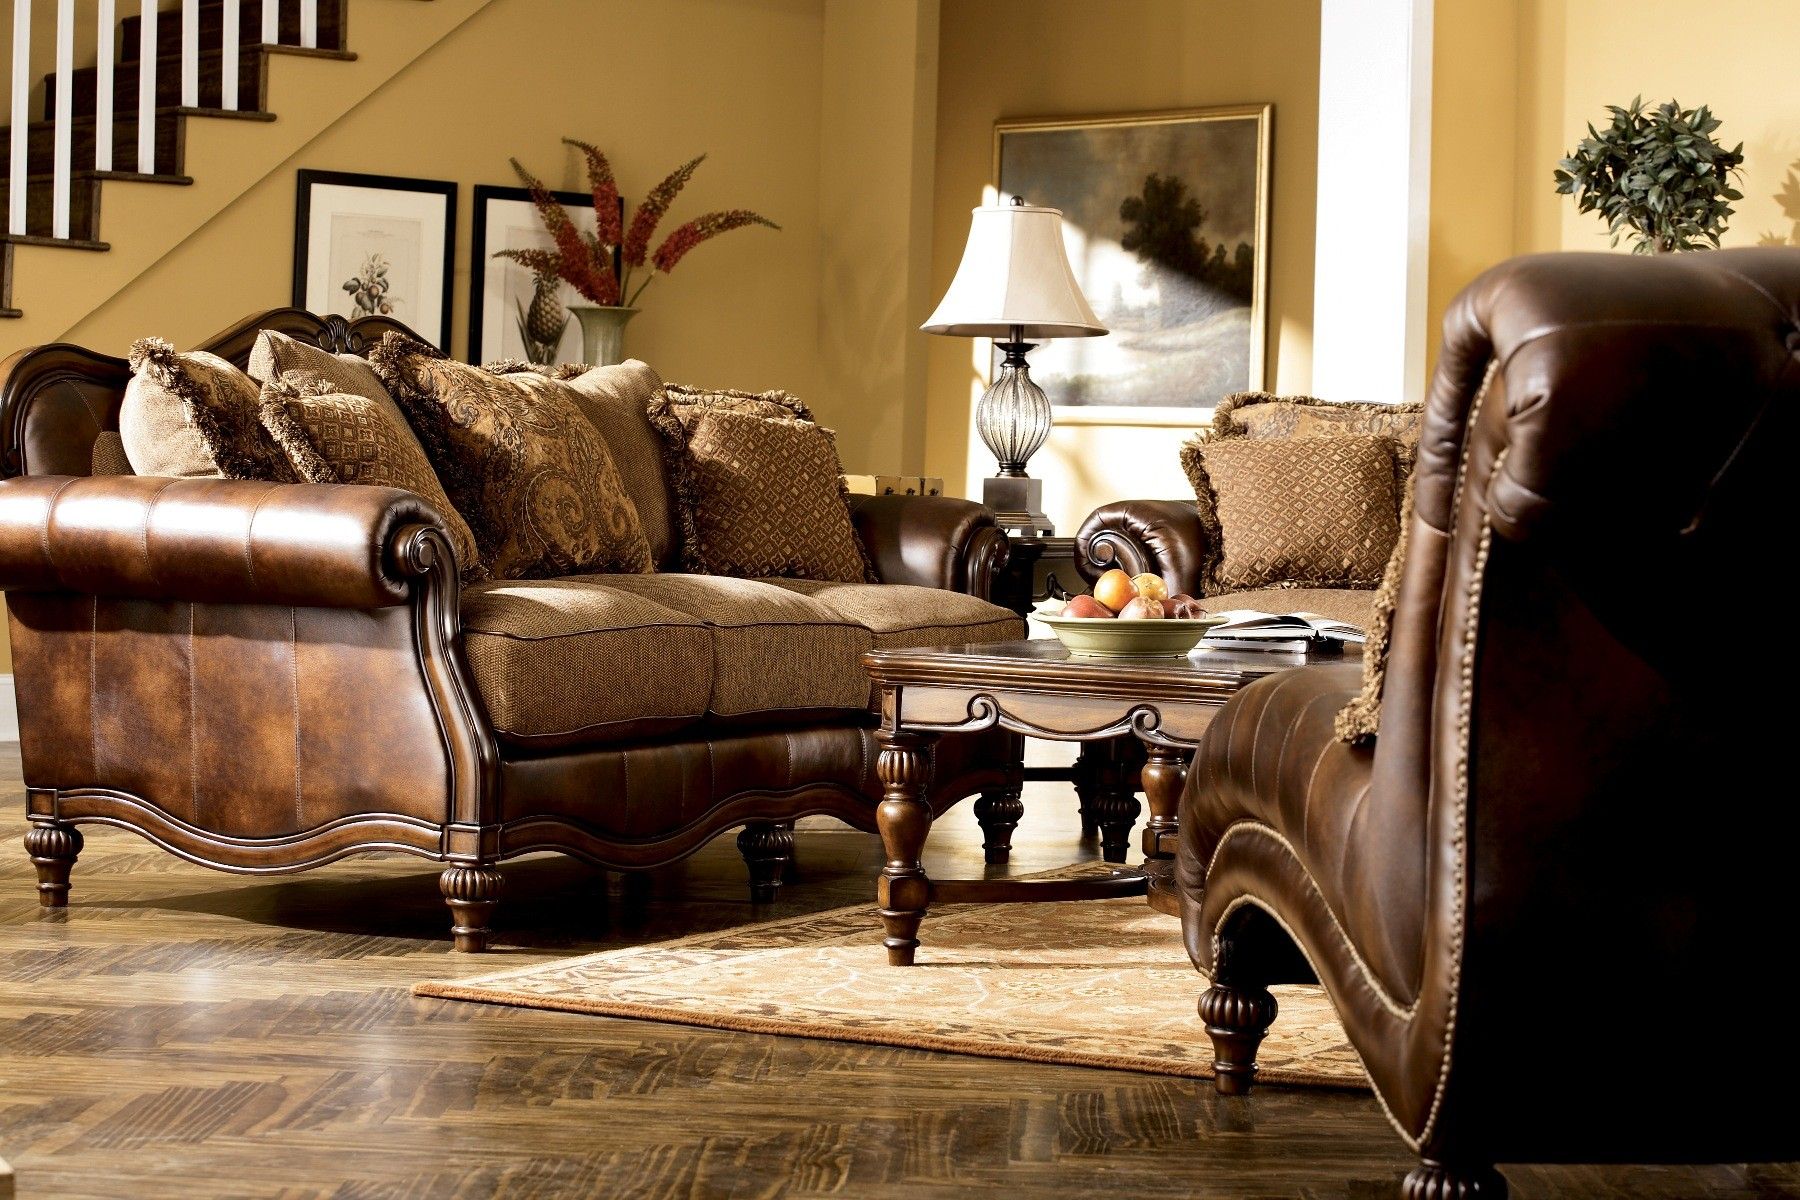 Claremore Antique Living Room Set from Ashley (84303)  Coleman ...